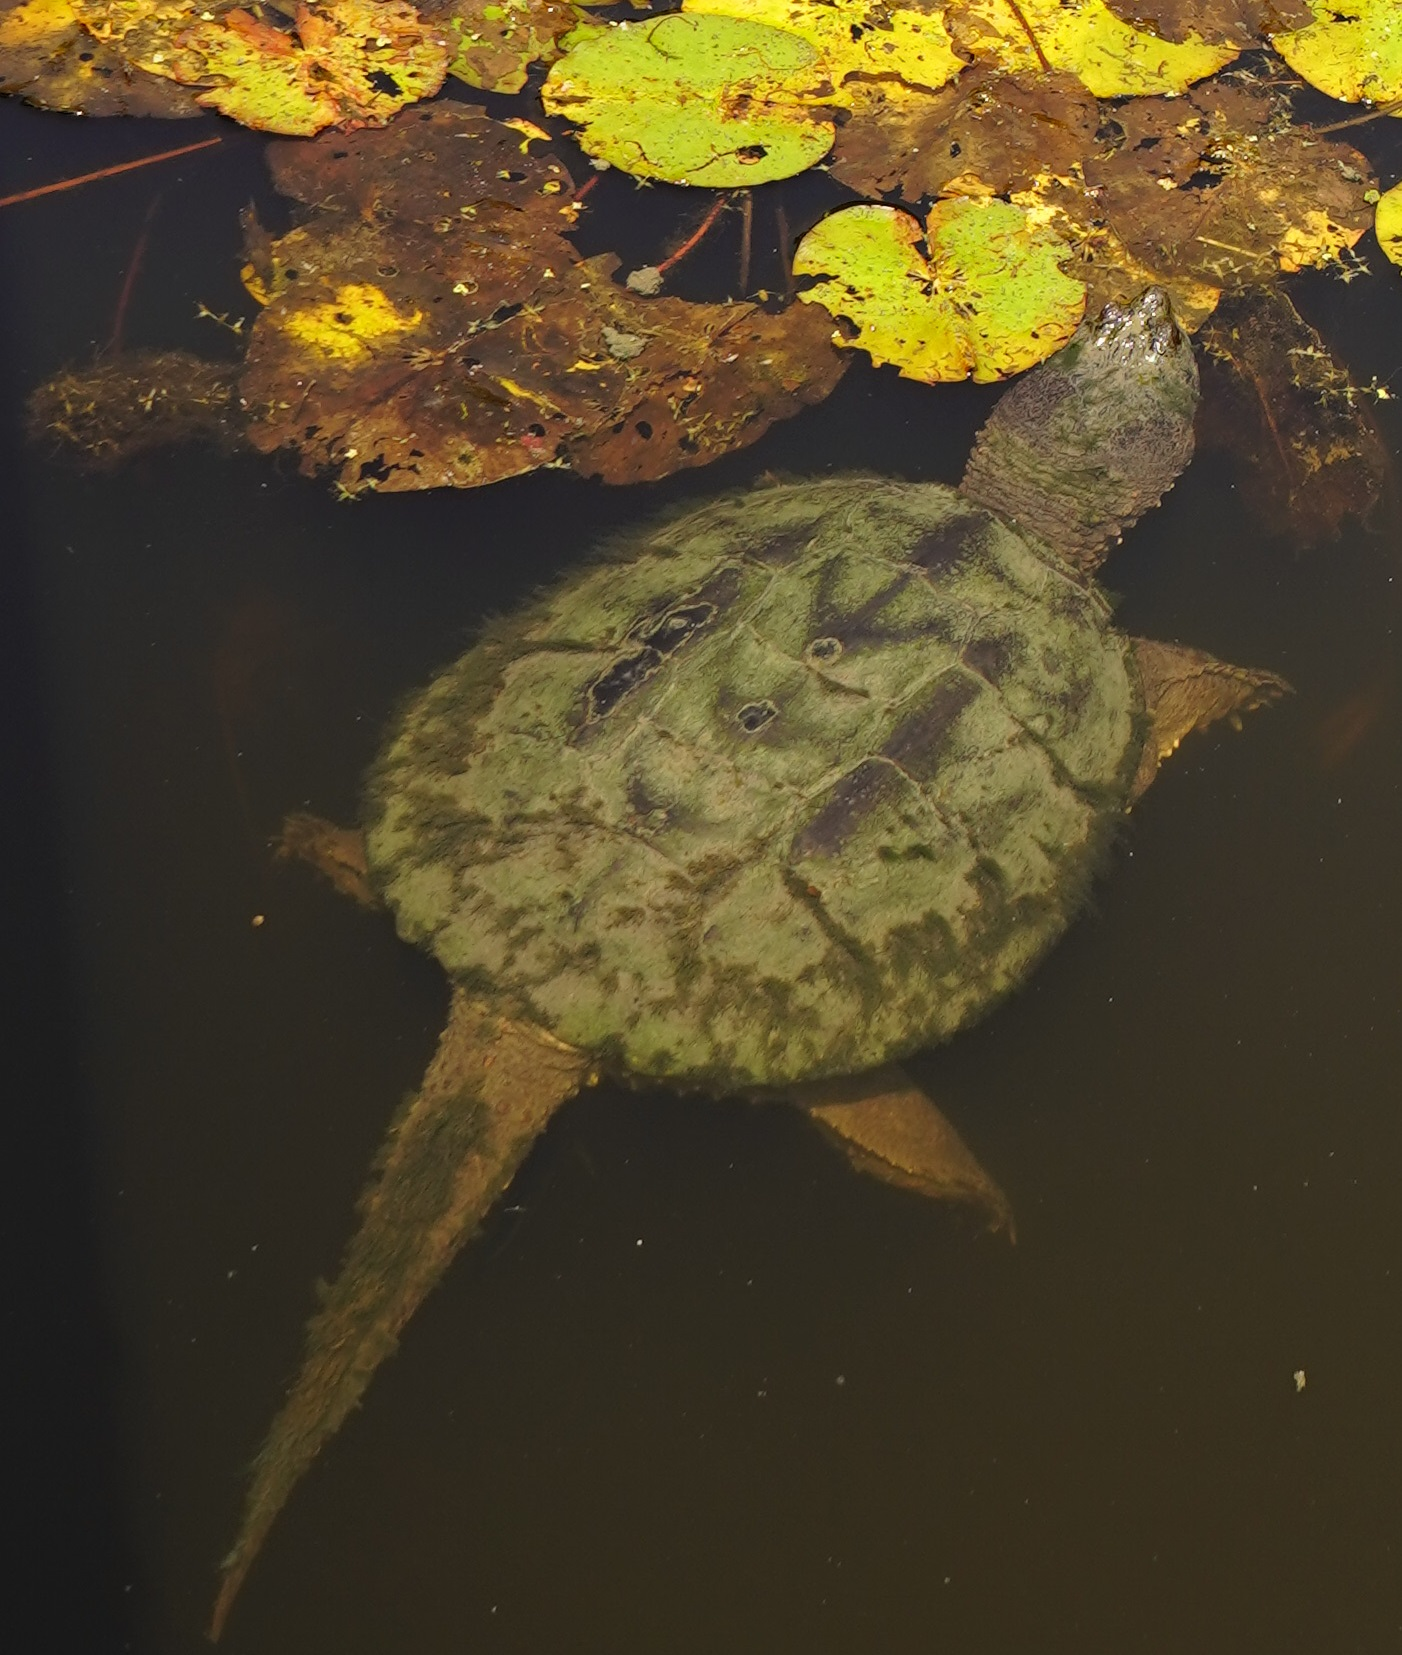 snapping turtles toronto evergreen works